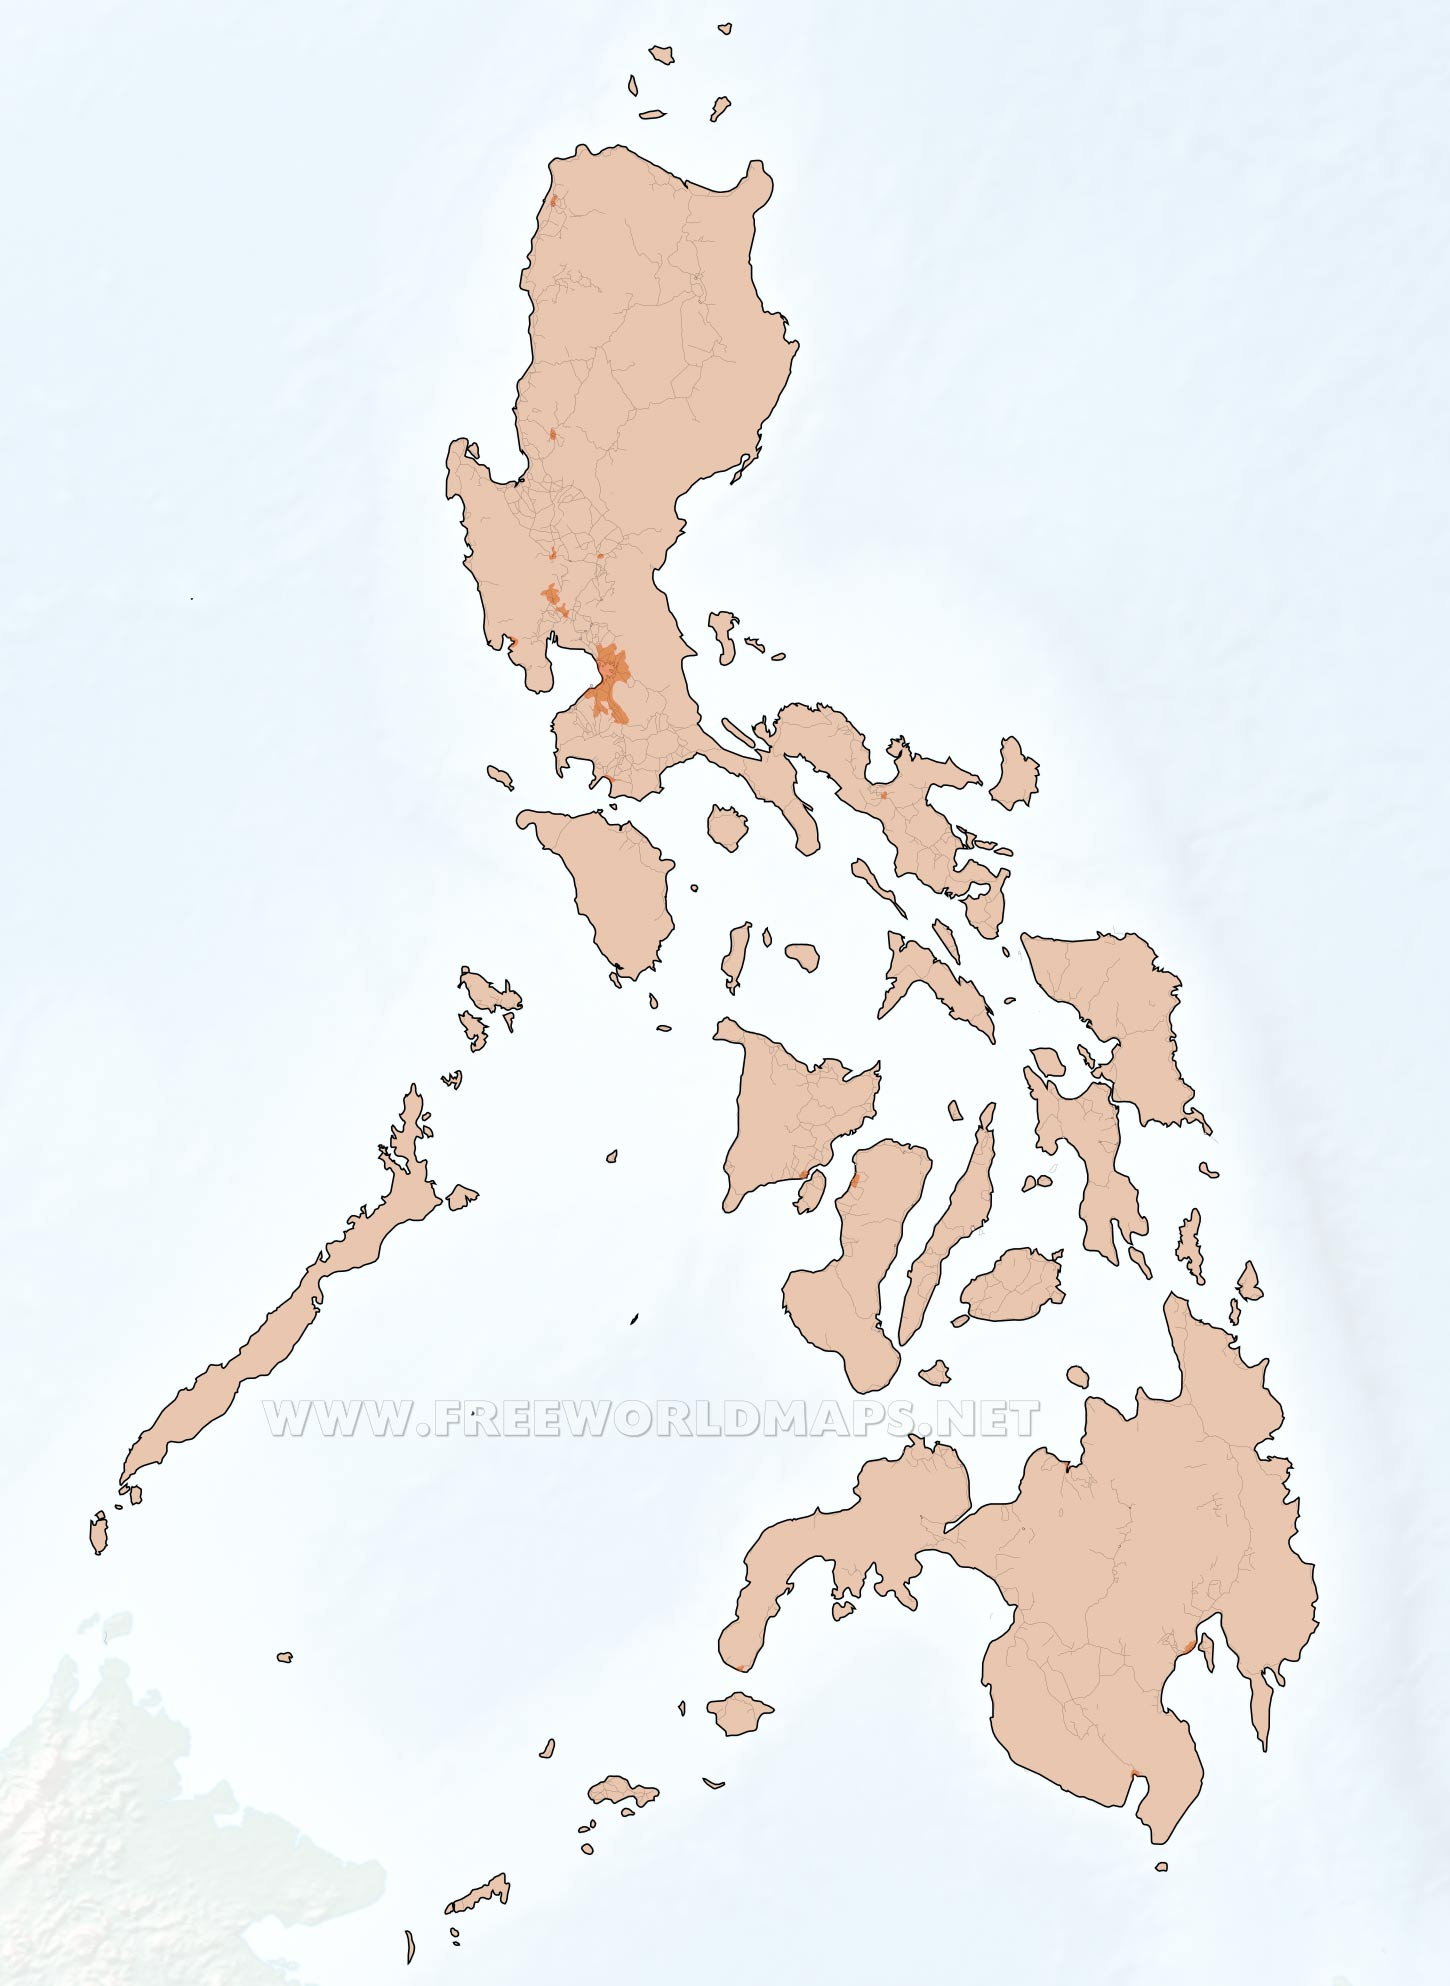 Philippine Map Drawing at GetDrawings.com | Free for personal use ...